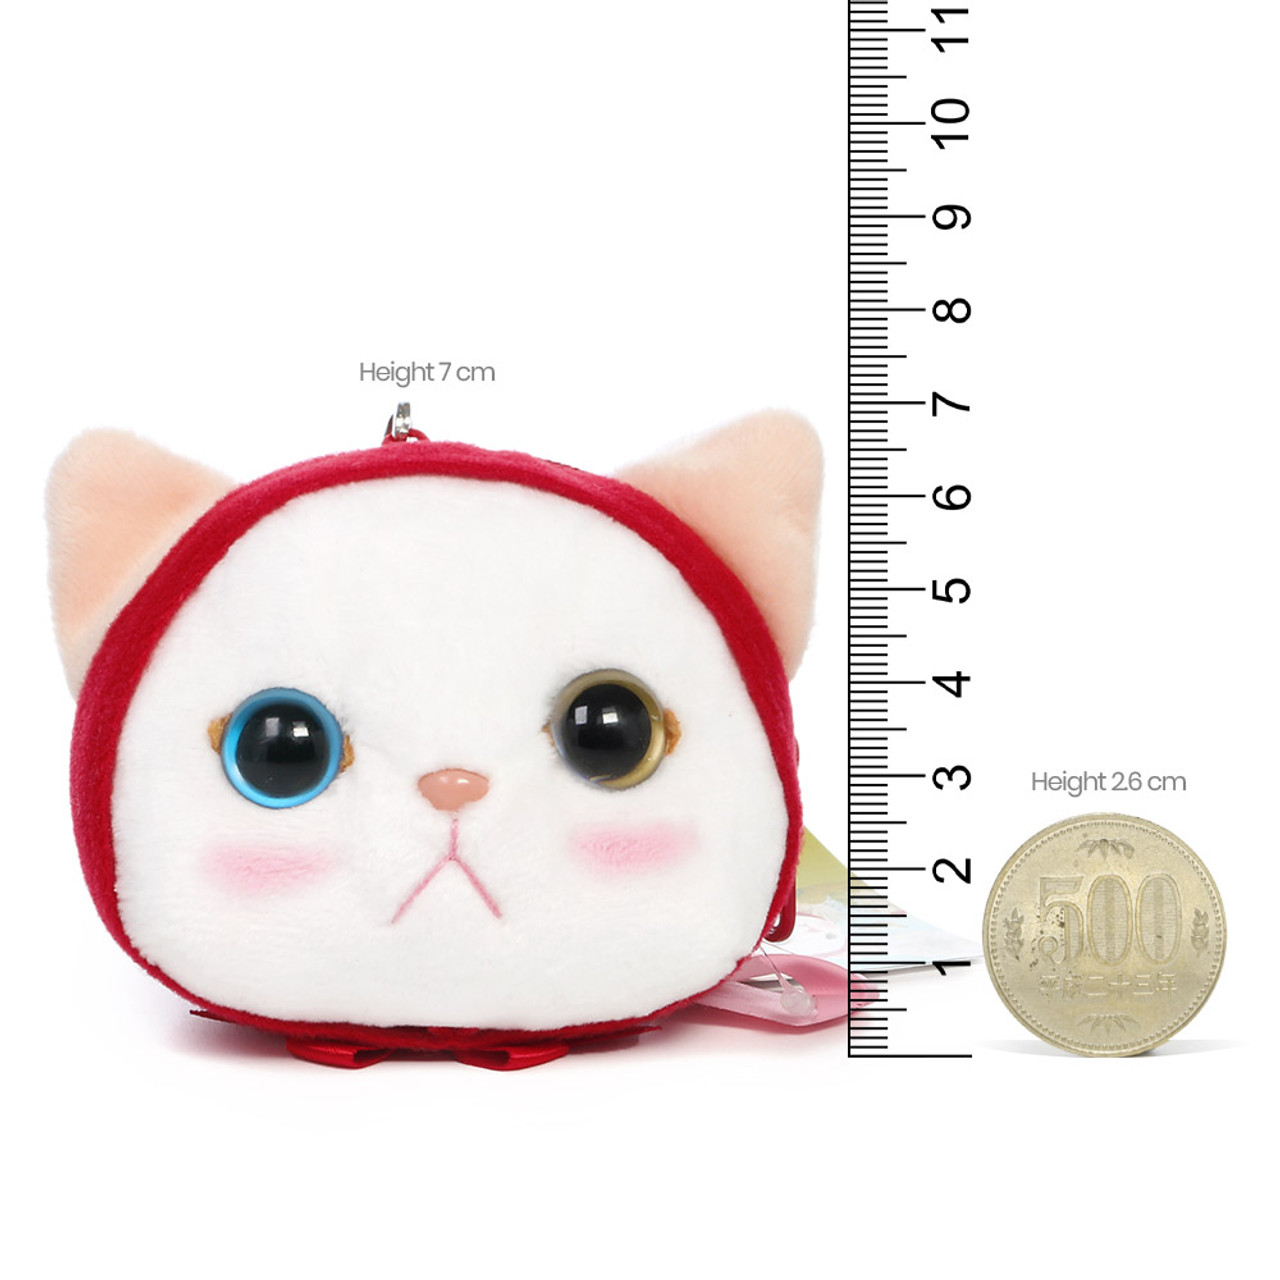 Choo Choo Cat Mini Coin Pouch - Little Red Riding Hood ( Proportion )